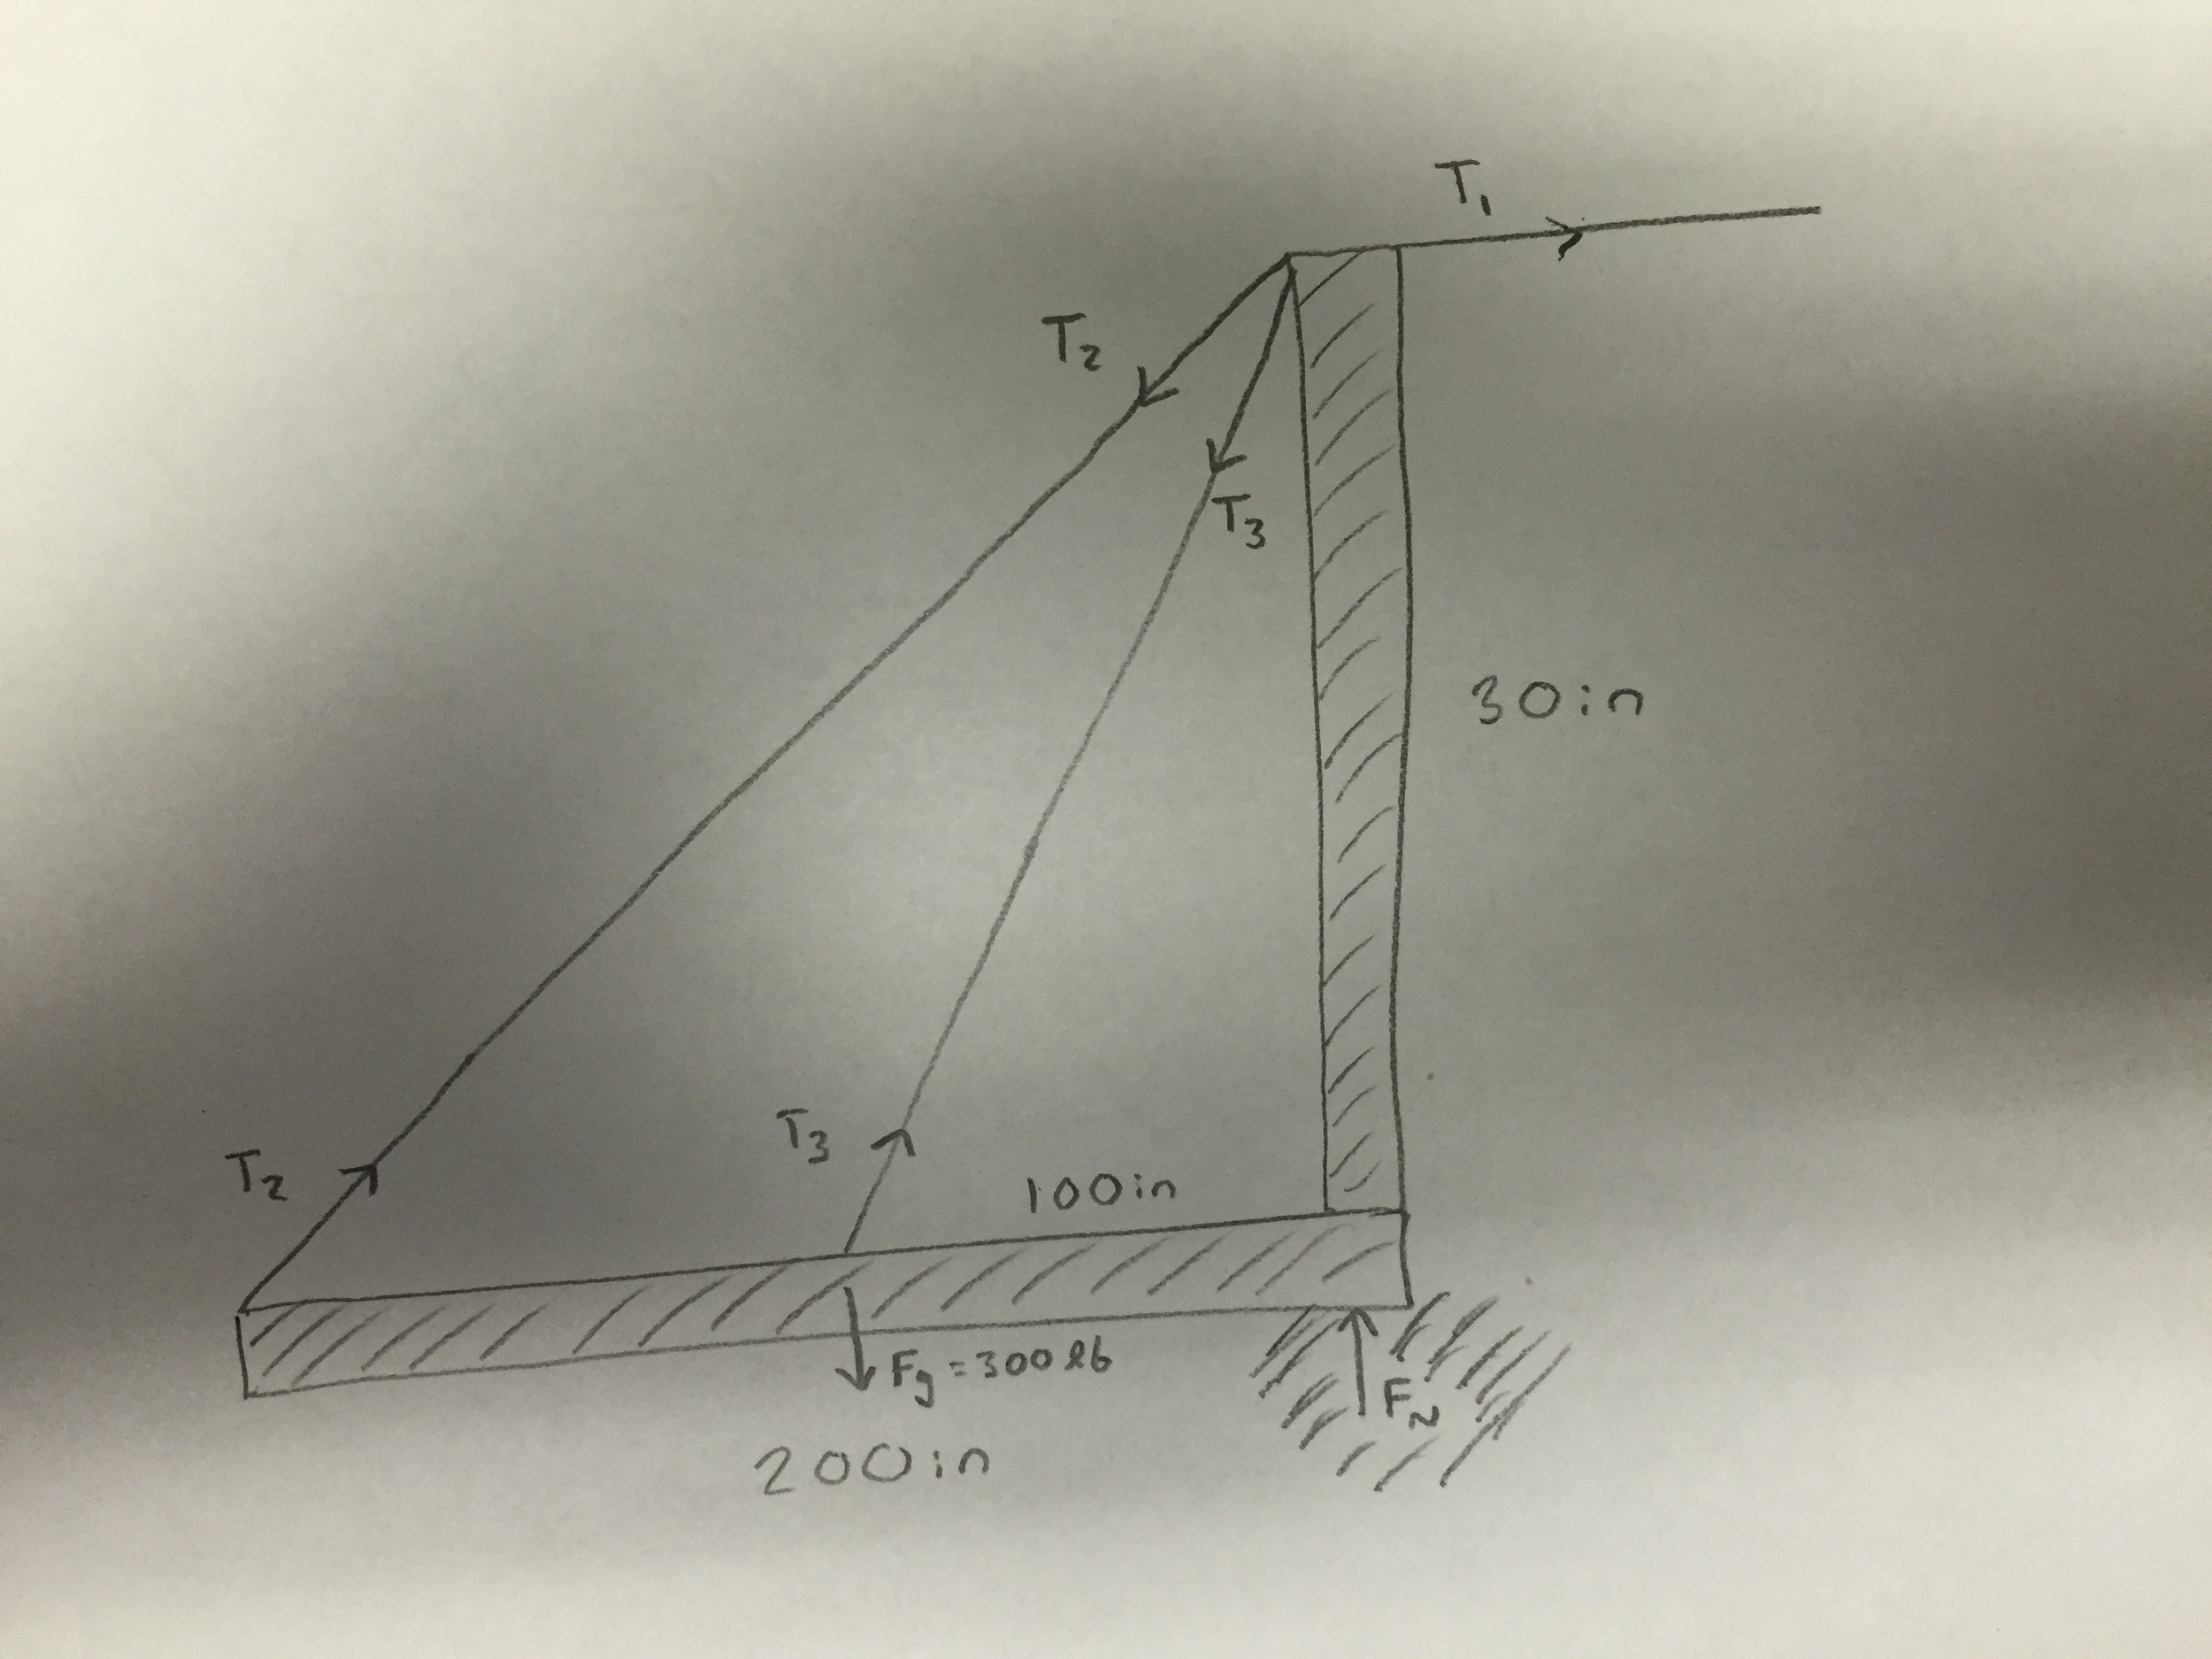 Statics guy wire question. L shape structure is fi